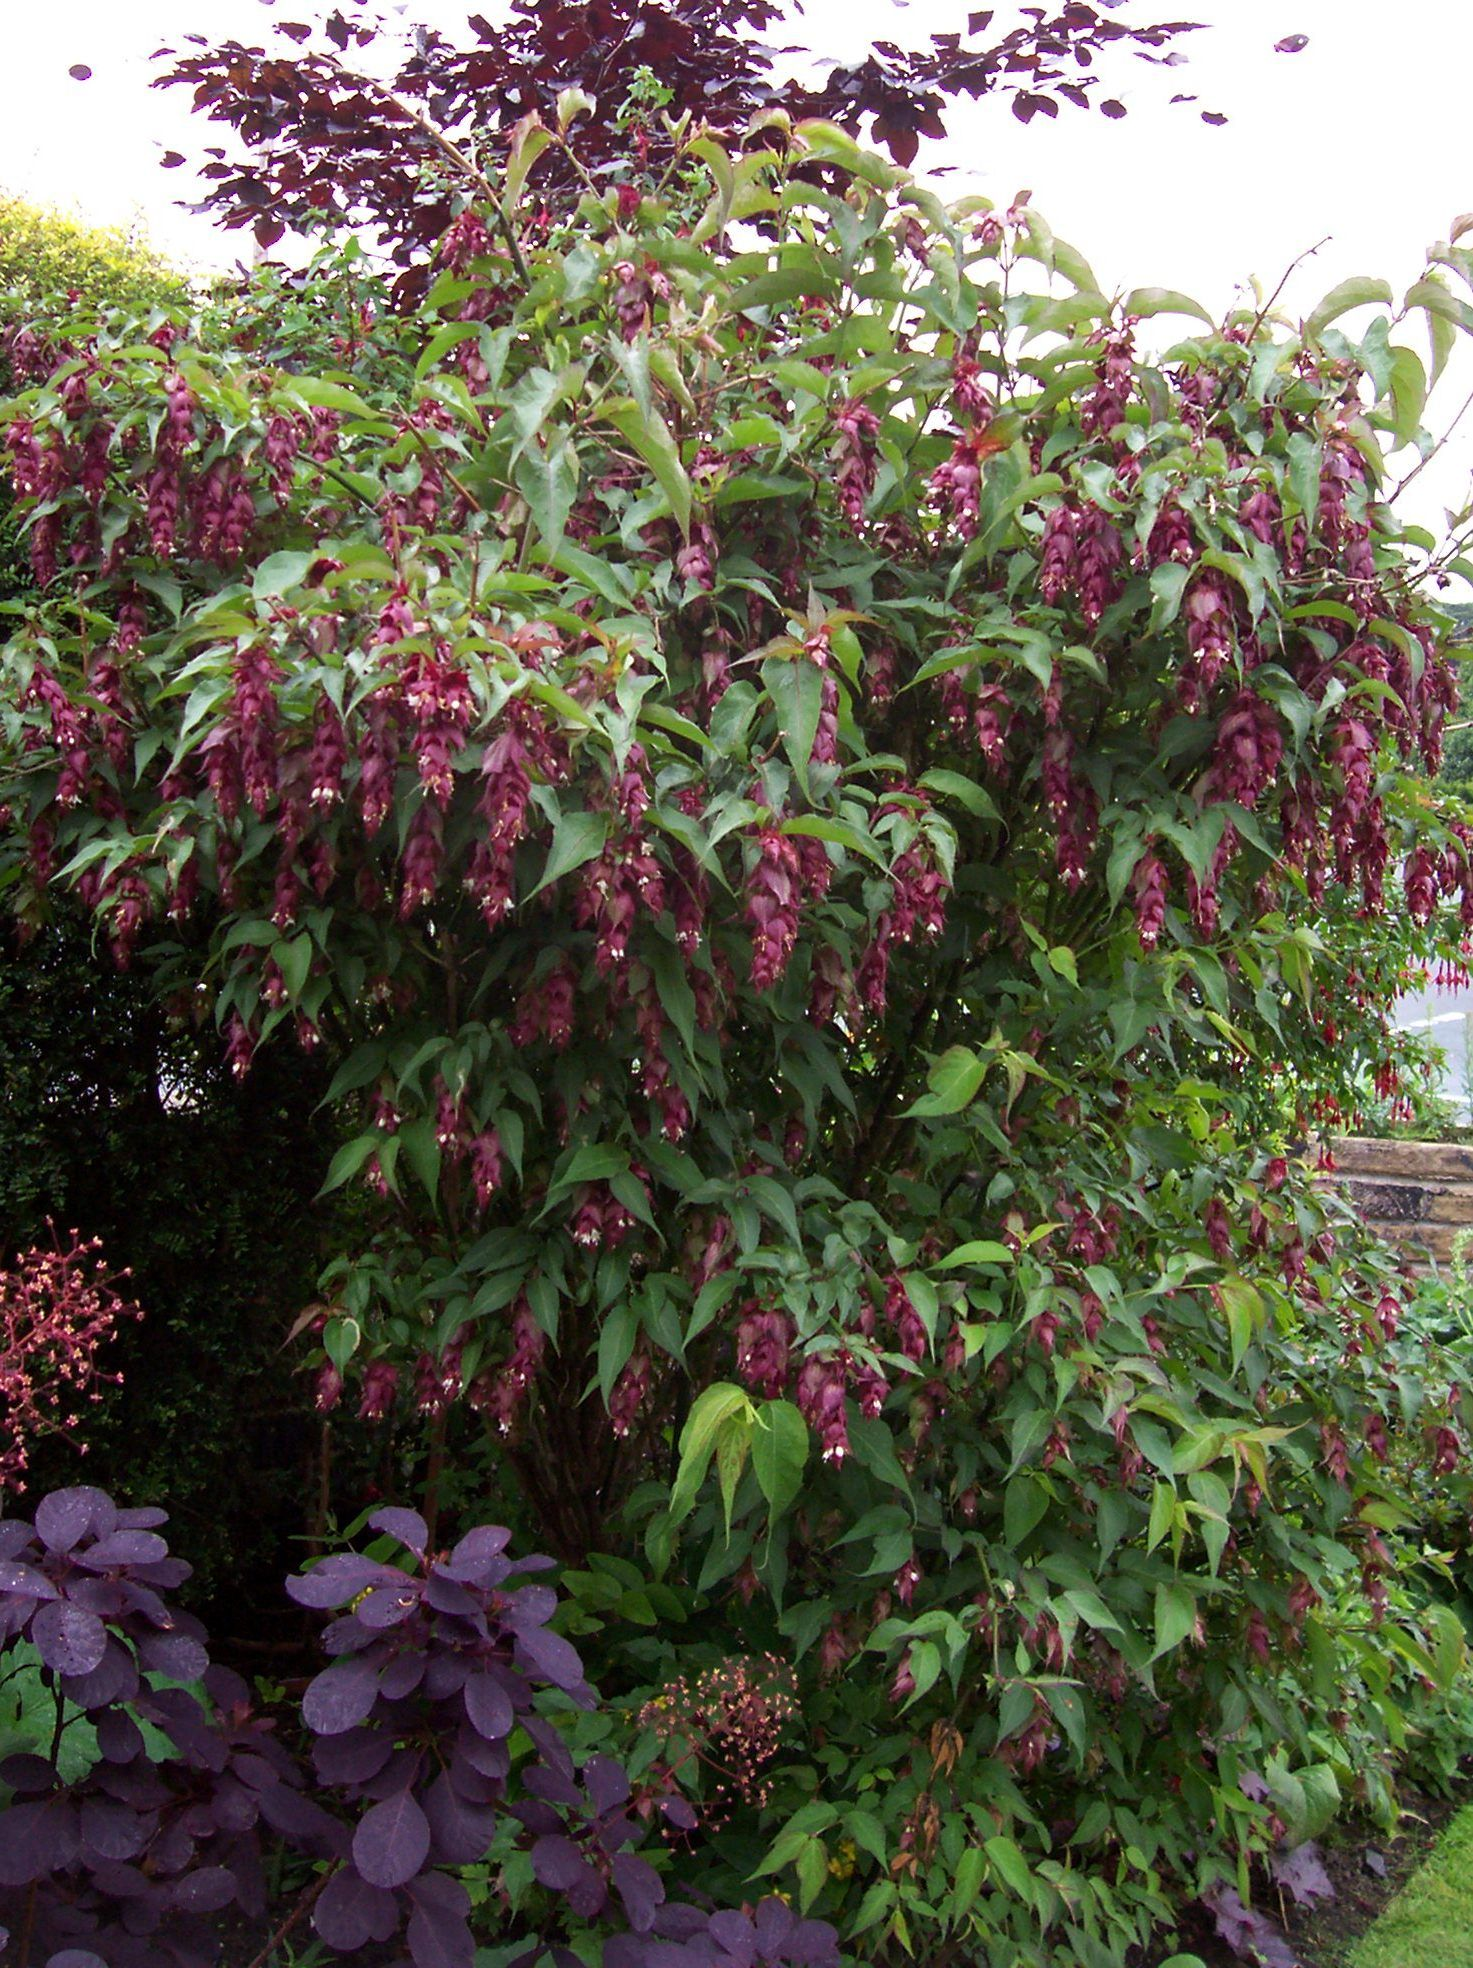 Cool Looking Plants Leycesteria Formosa A Very Unusual Looking Shrub And